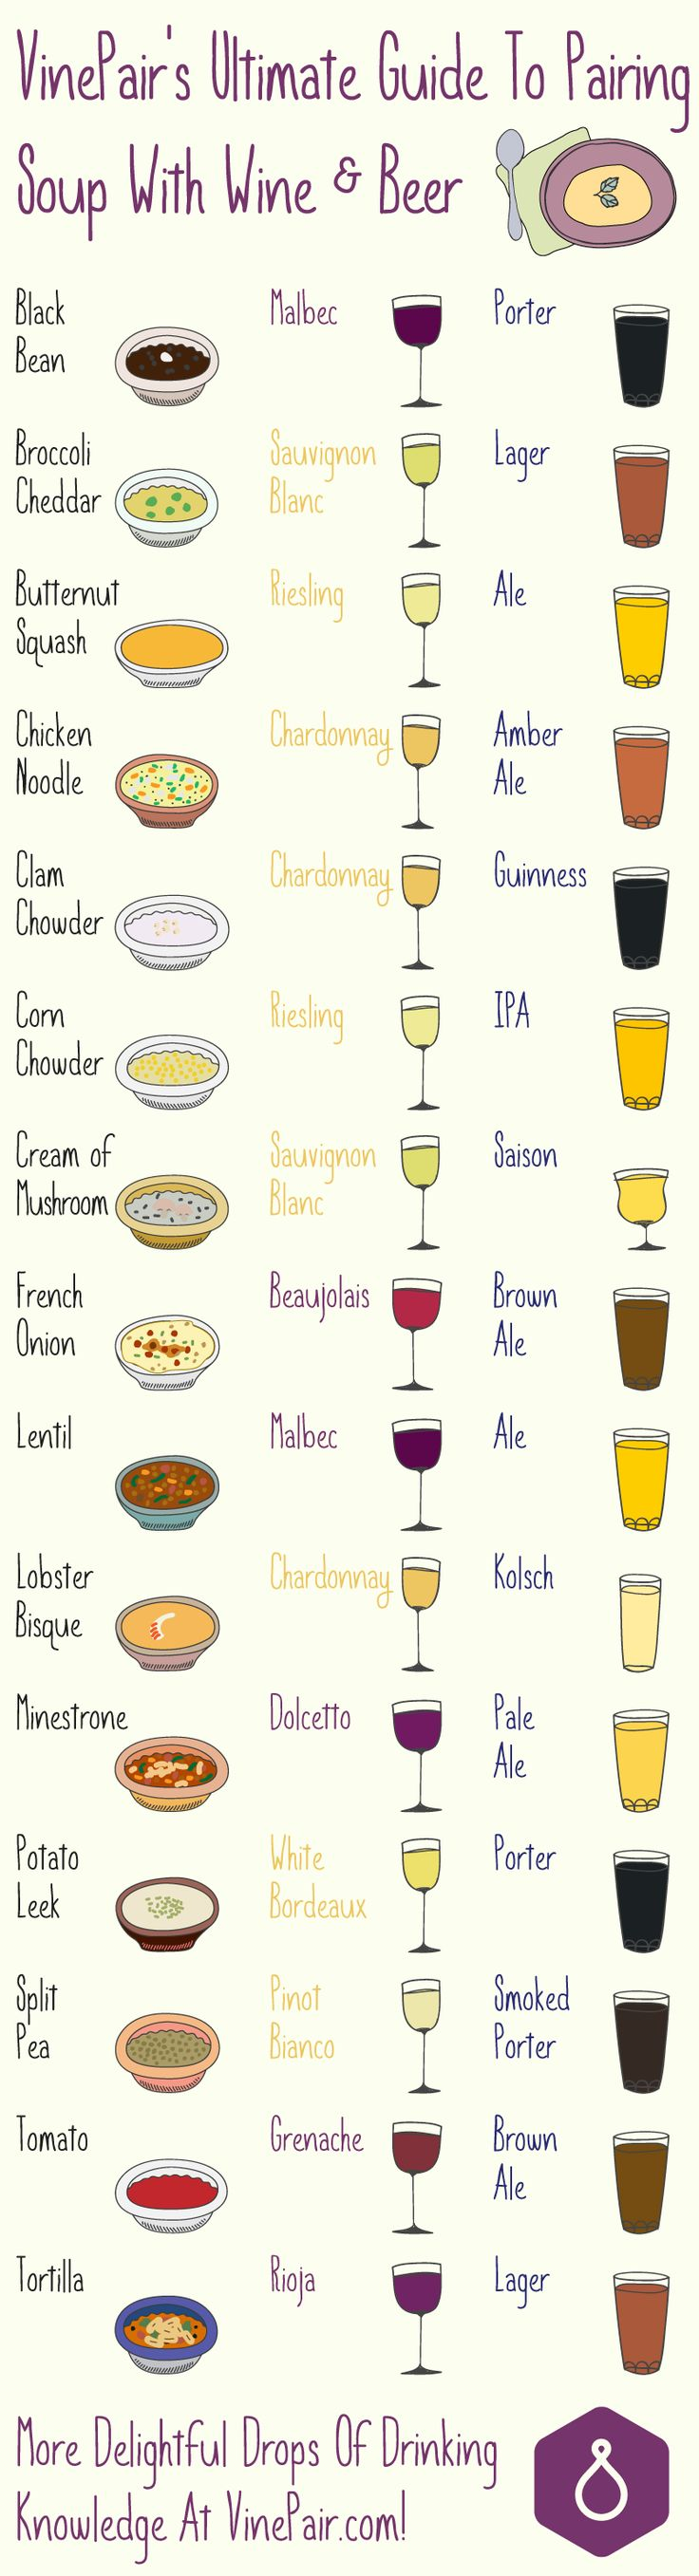 Wine and Food Pairings: 10 Charts That'll Make Your a Master of Flavour